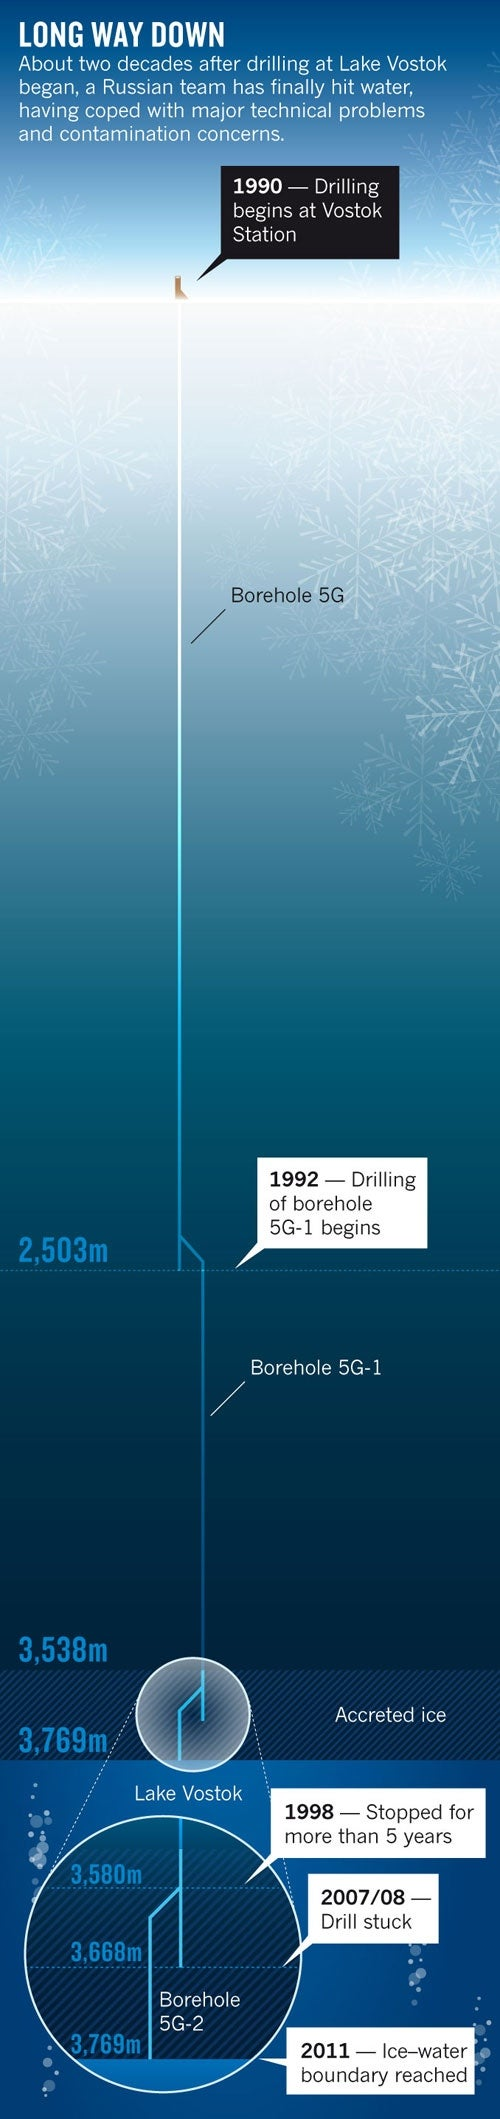 A visual account of the 22-year vertical trip into Lake Vostok